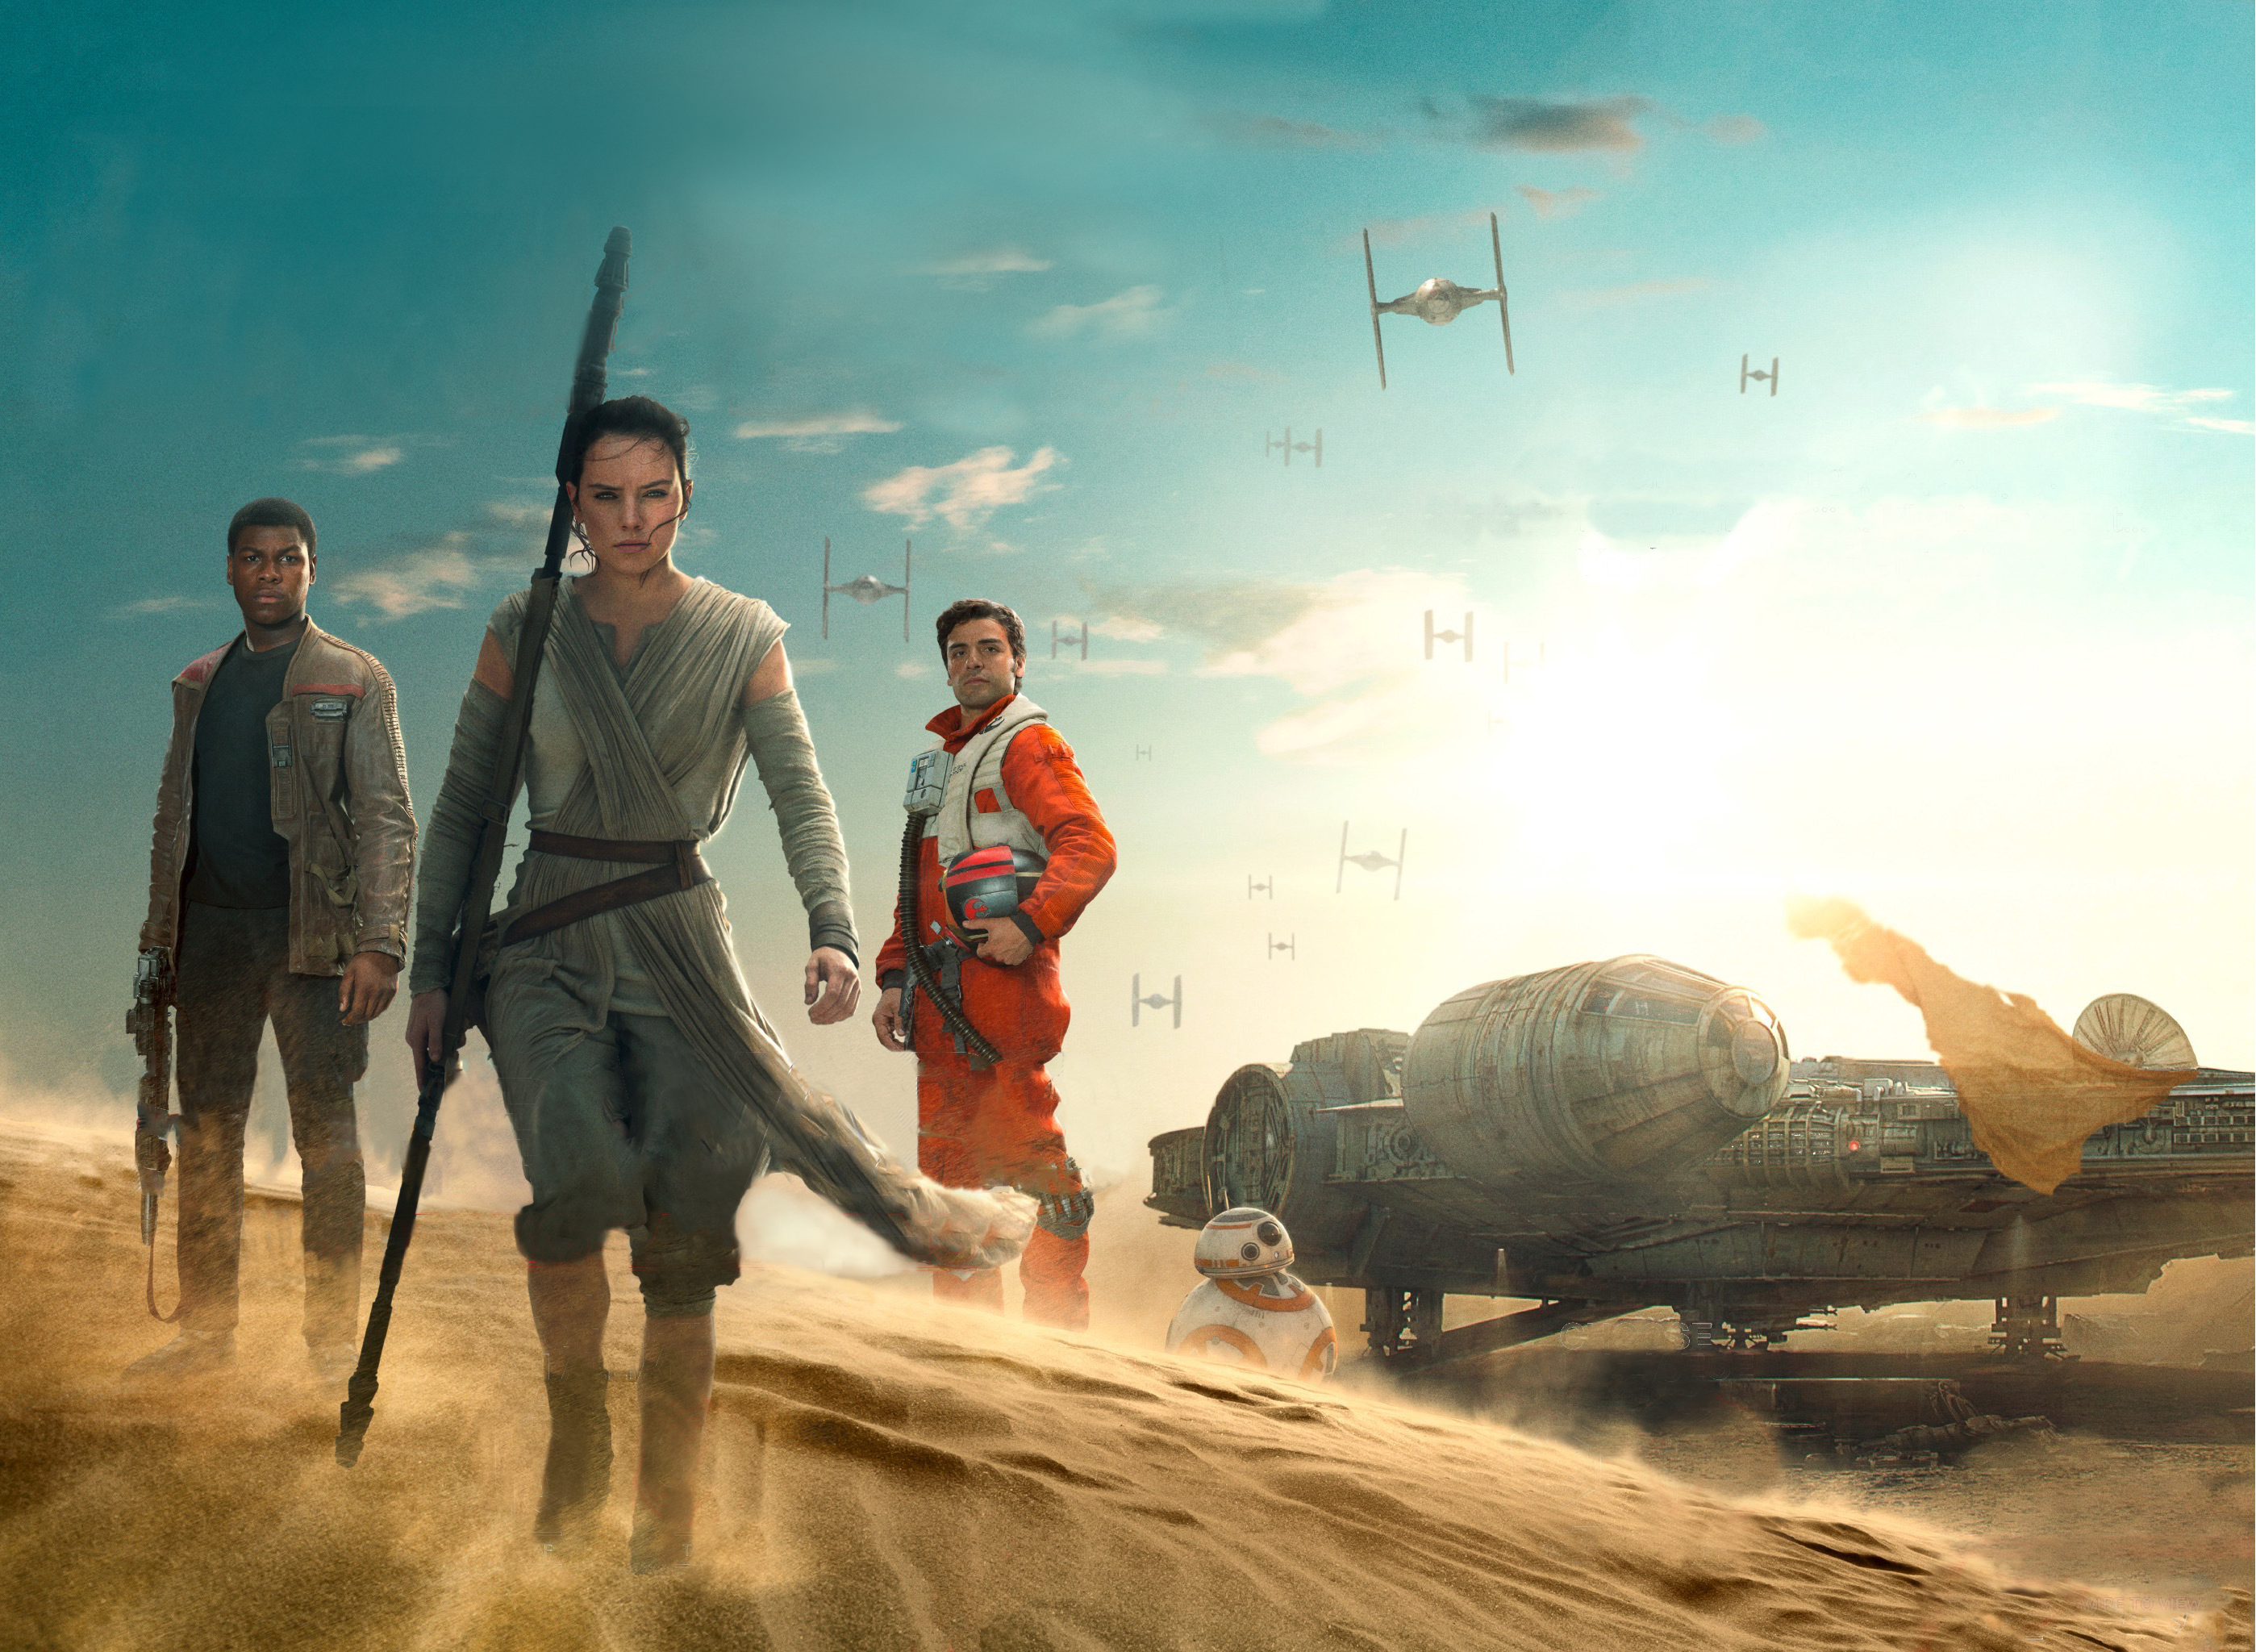 207 Star Wars Episode Vii The Force Awakens Hd Wallpapers